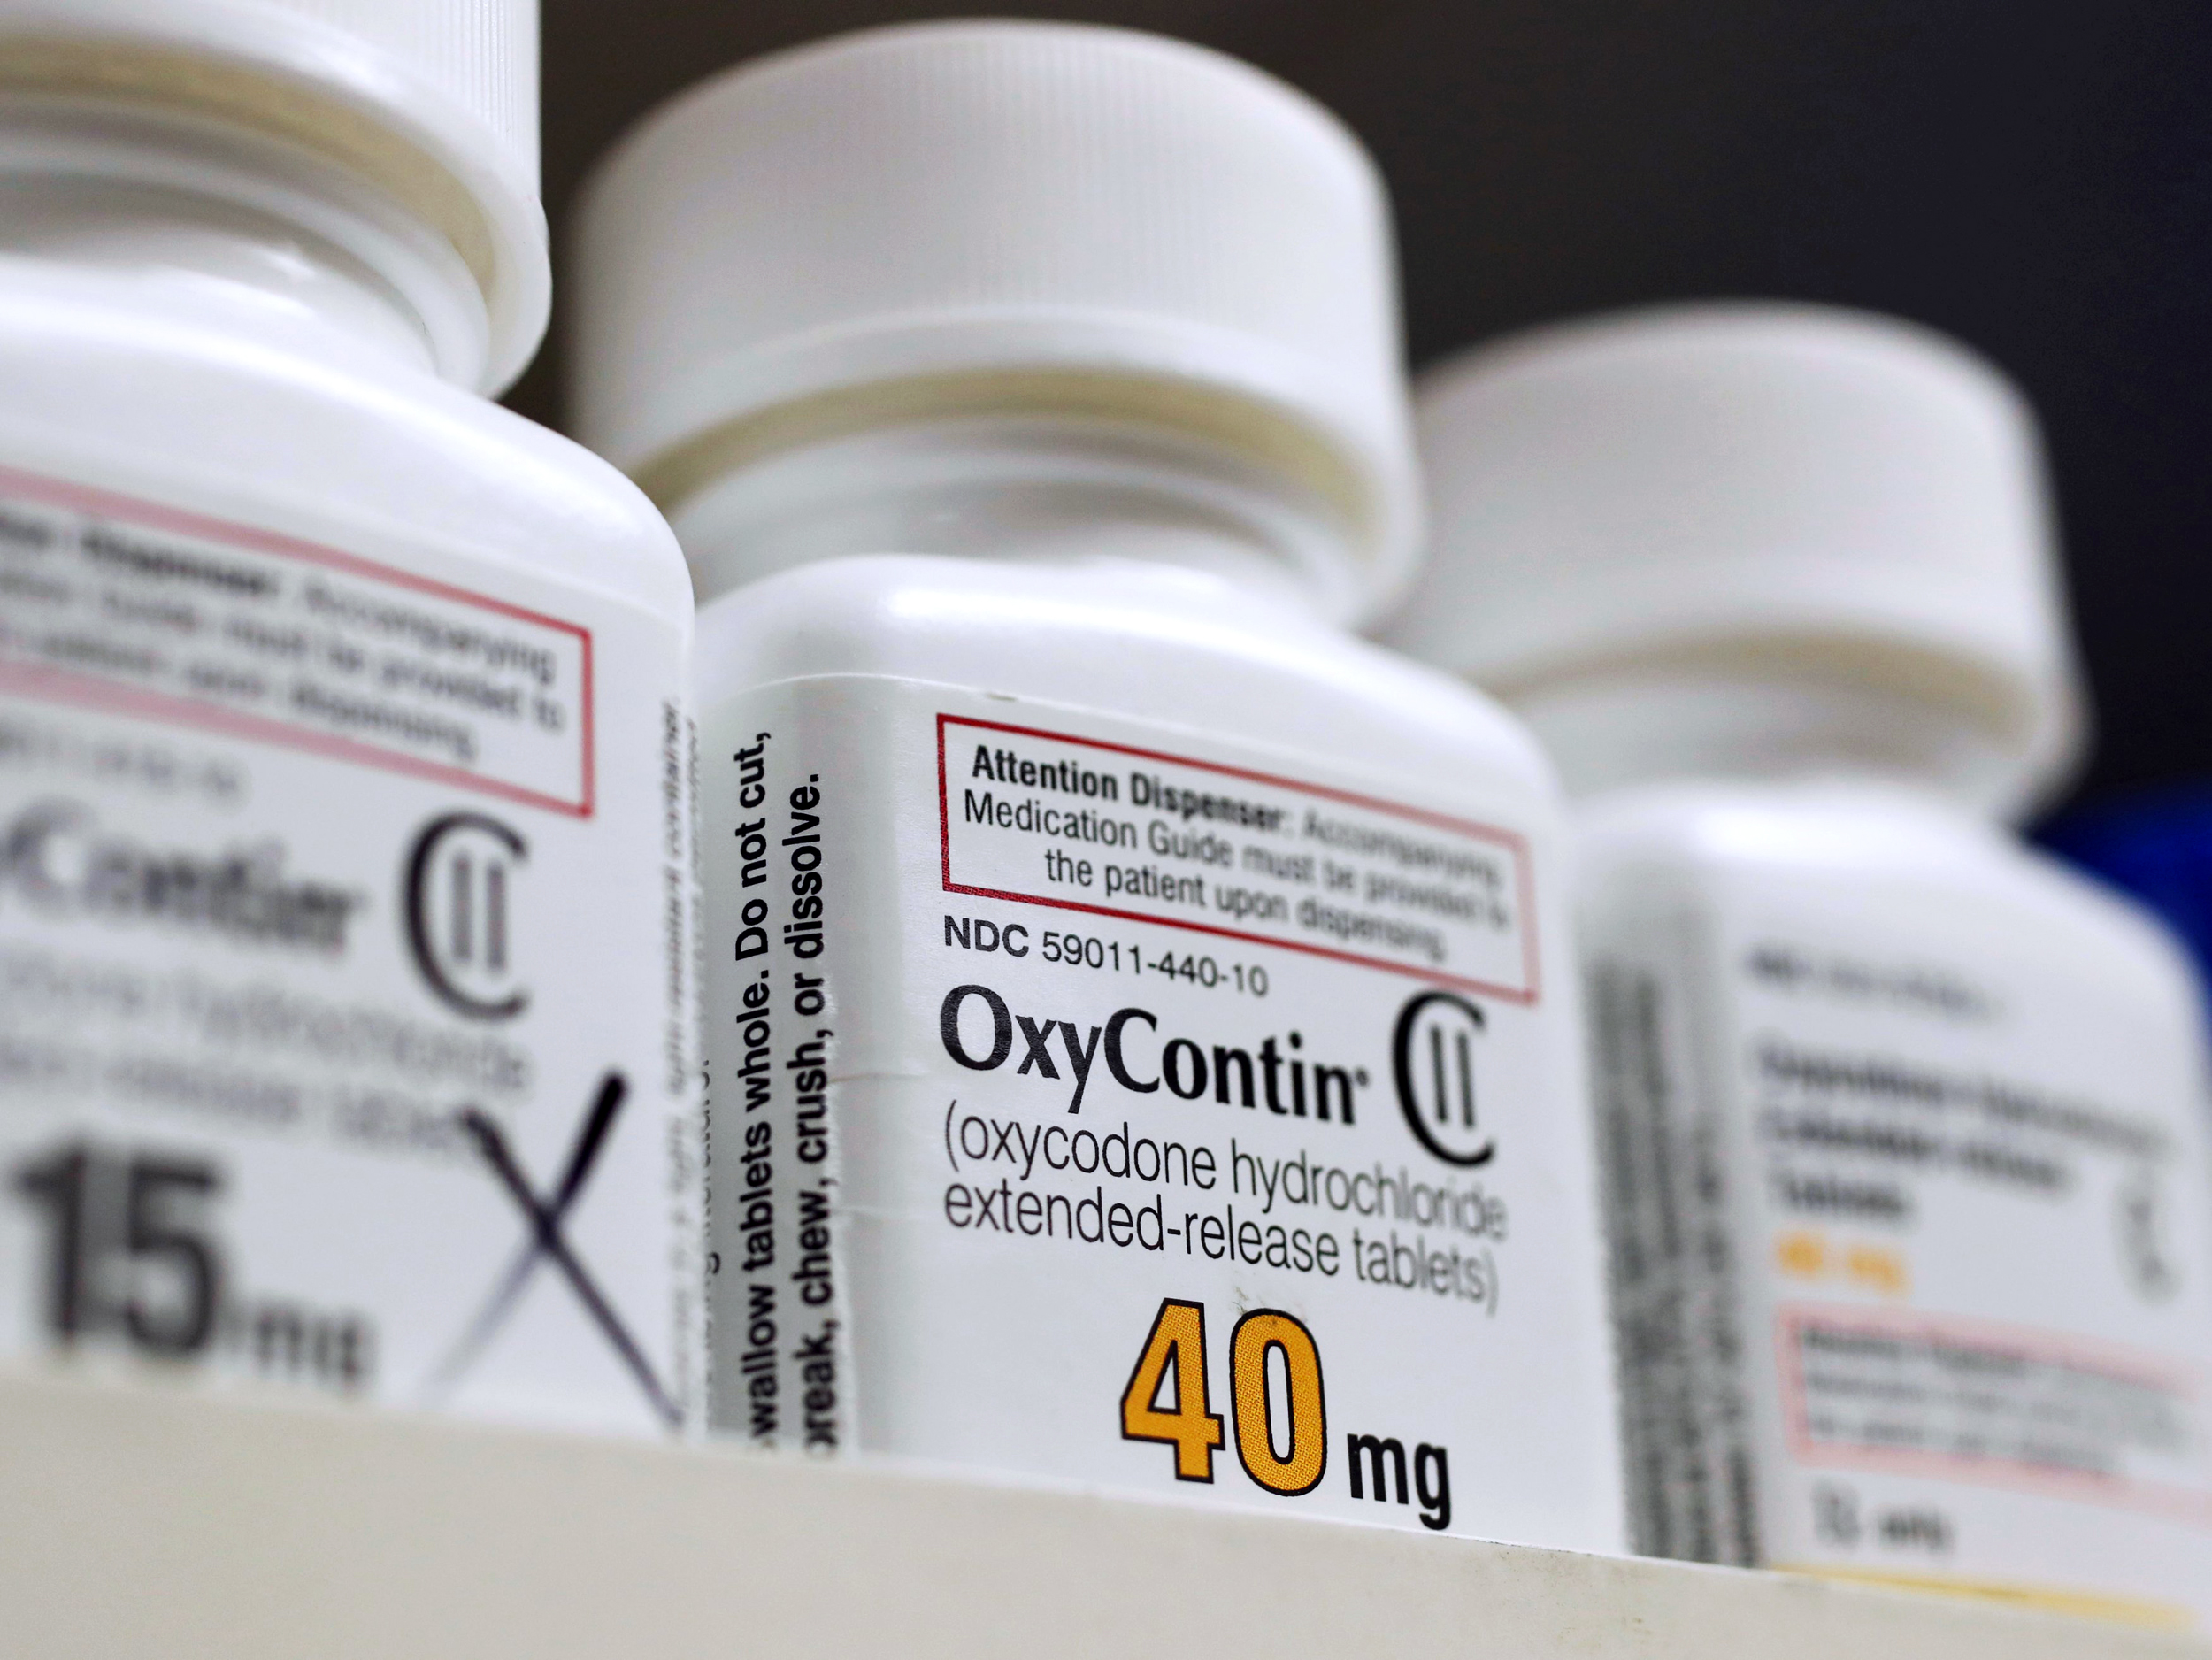 Judge will approve Purdue Pharma bankruptcy that shields Sacklers from opioid lawsuits